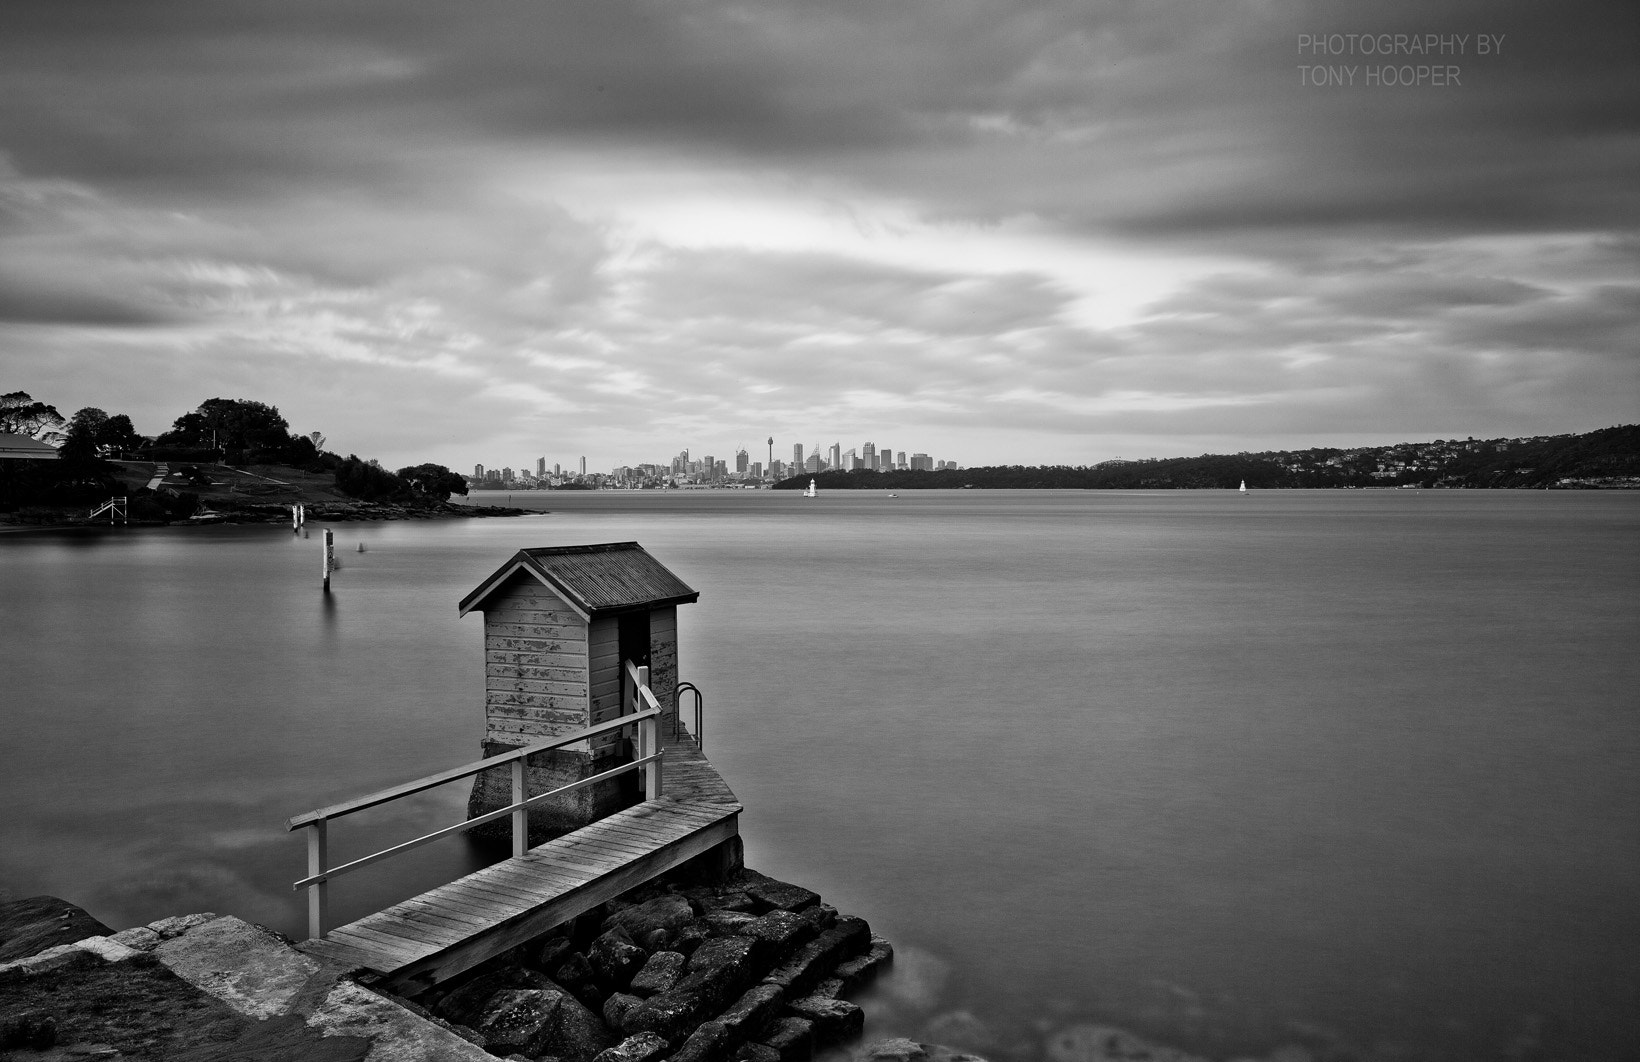 Photograph Room with a view by Tony Hooper on 500px